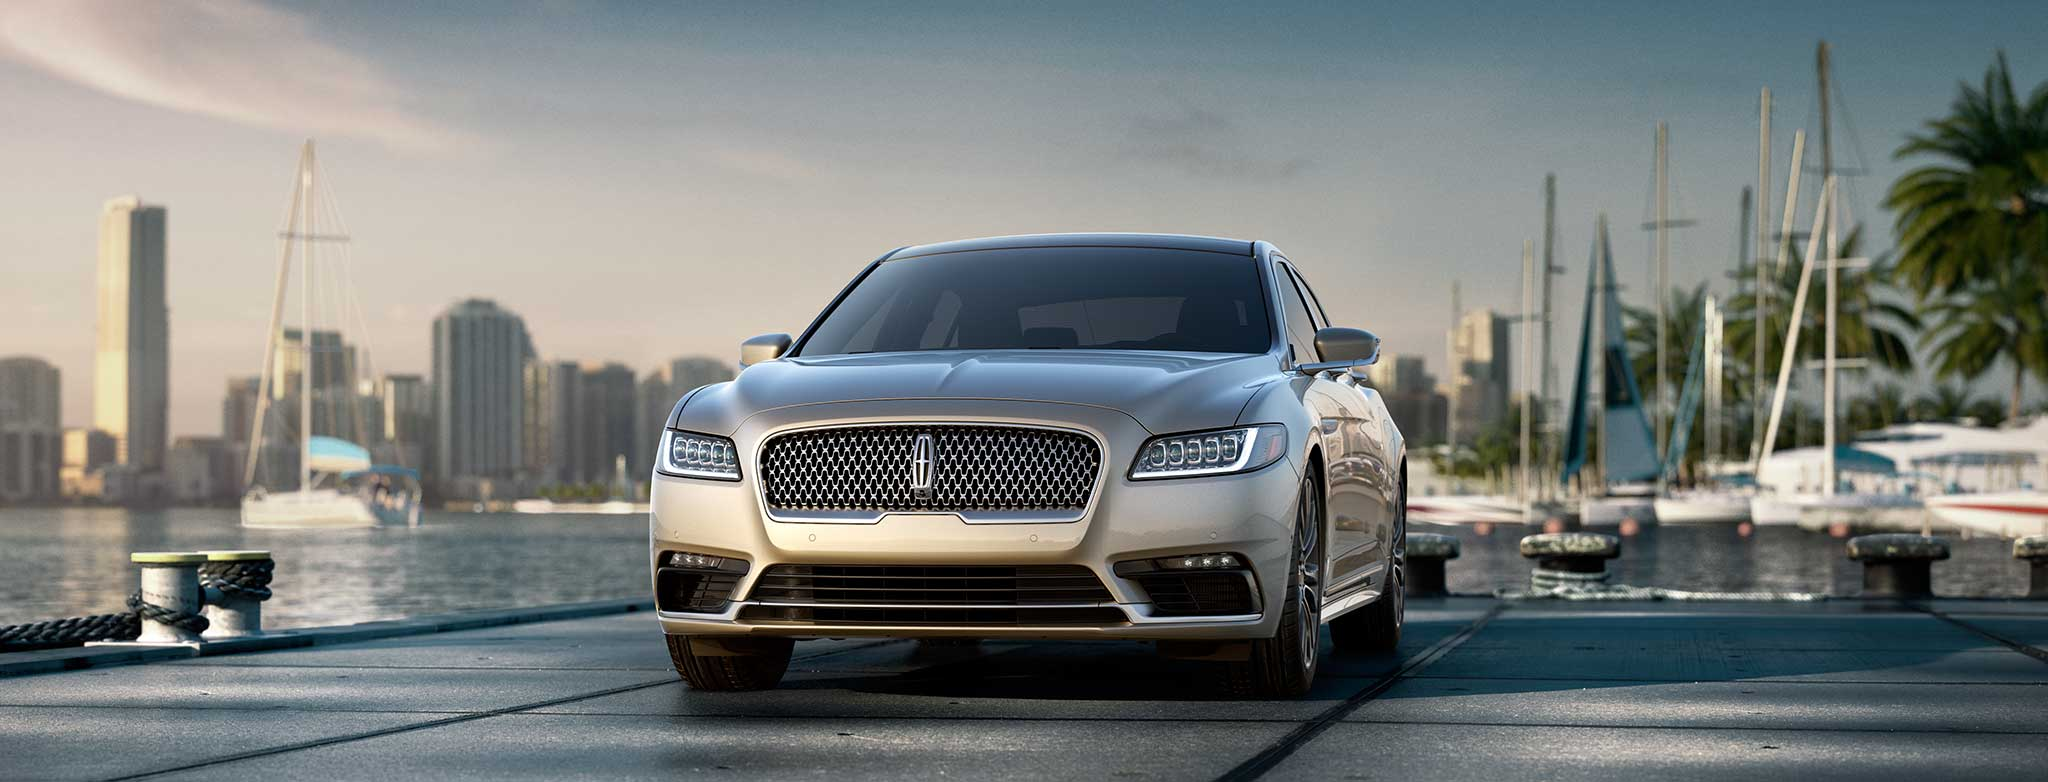 Best luxury cars: 2017 Lincoln Continental